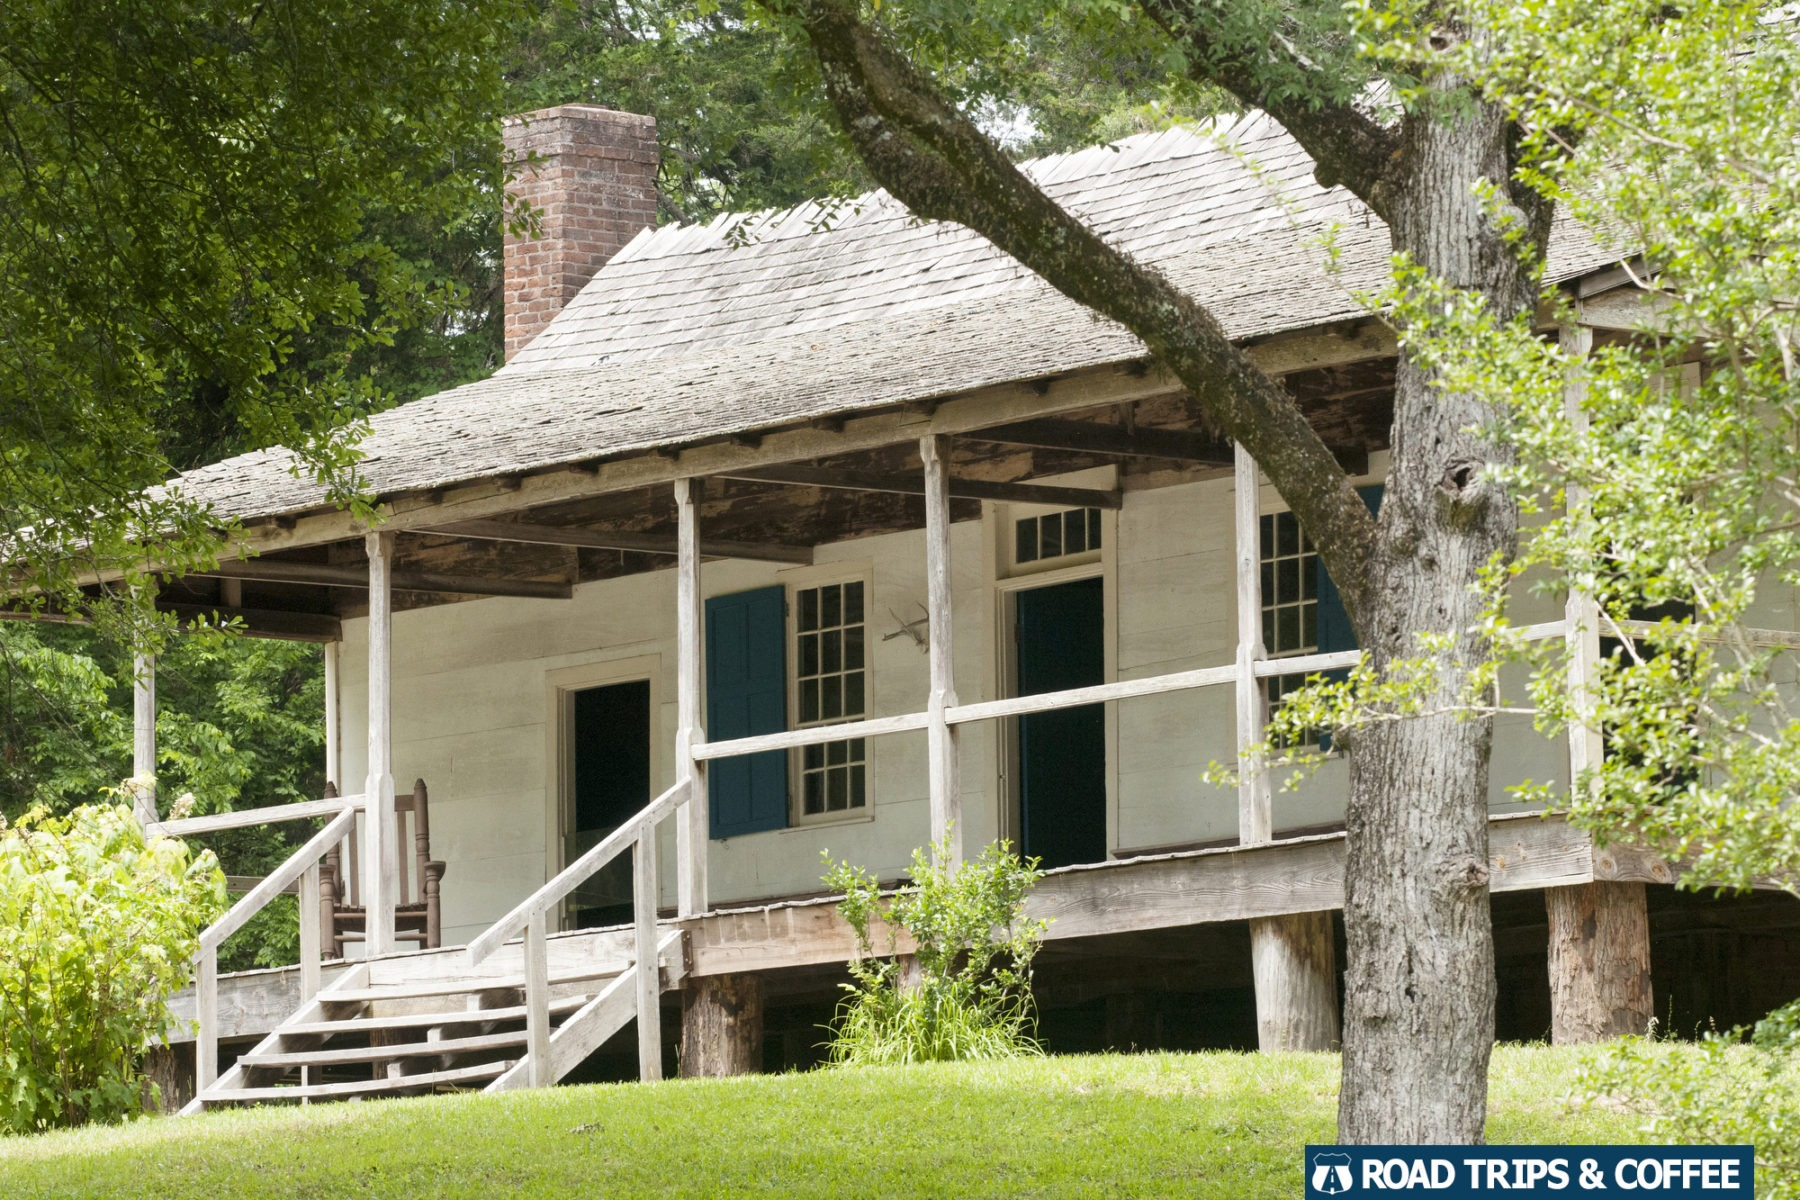 Old inn at Mount Locus at Milepost 15.5 on the Natchez Trace Parkway in Mississippi